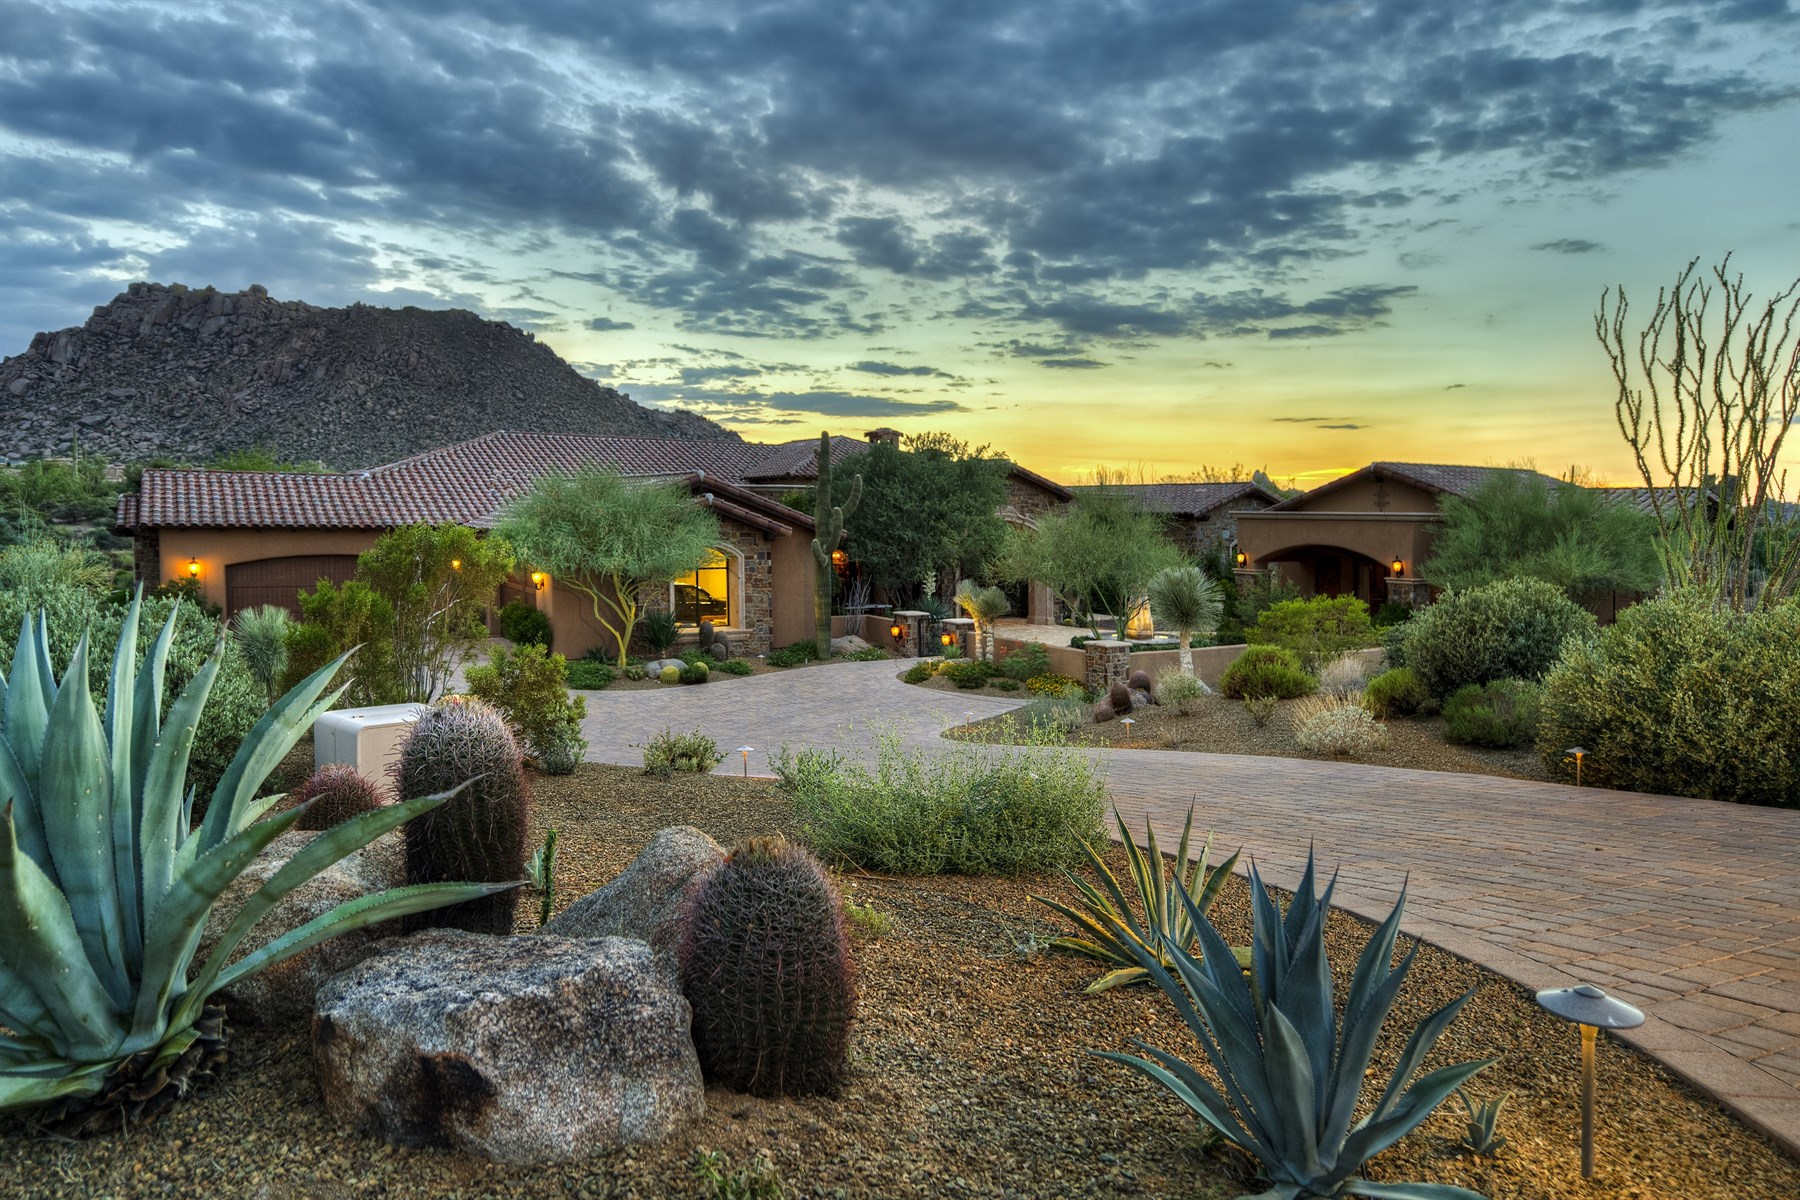 獨棟家庭住宅 為 出售 在 Sprawling Tuscan Estate with Sweeping Mountain Views in Gated Collina e Vista 11609 E Quartz Rock Rd Scottsdale, 亞利桑那州 85255 美國